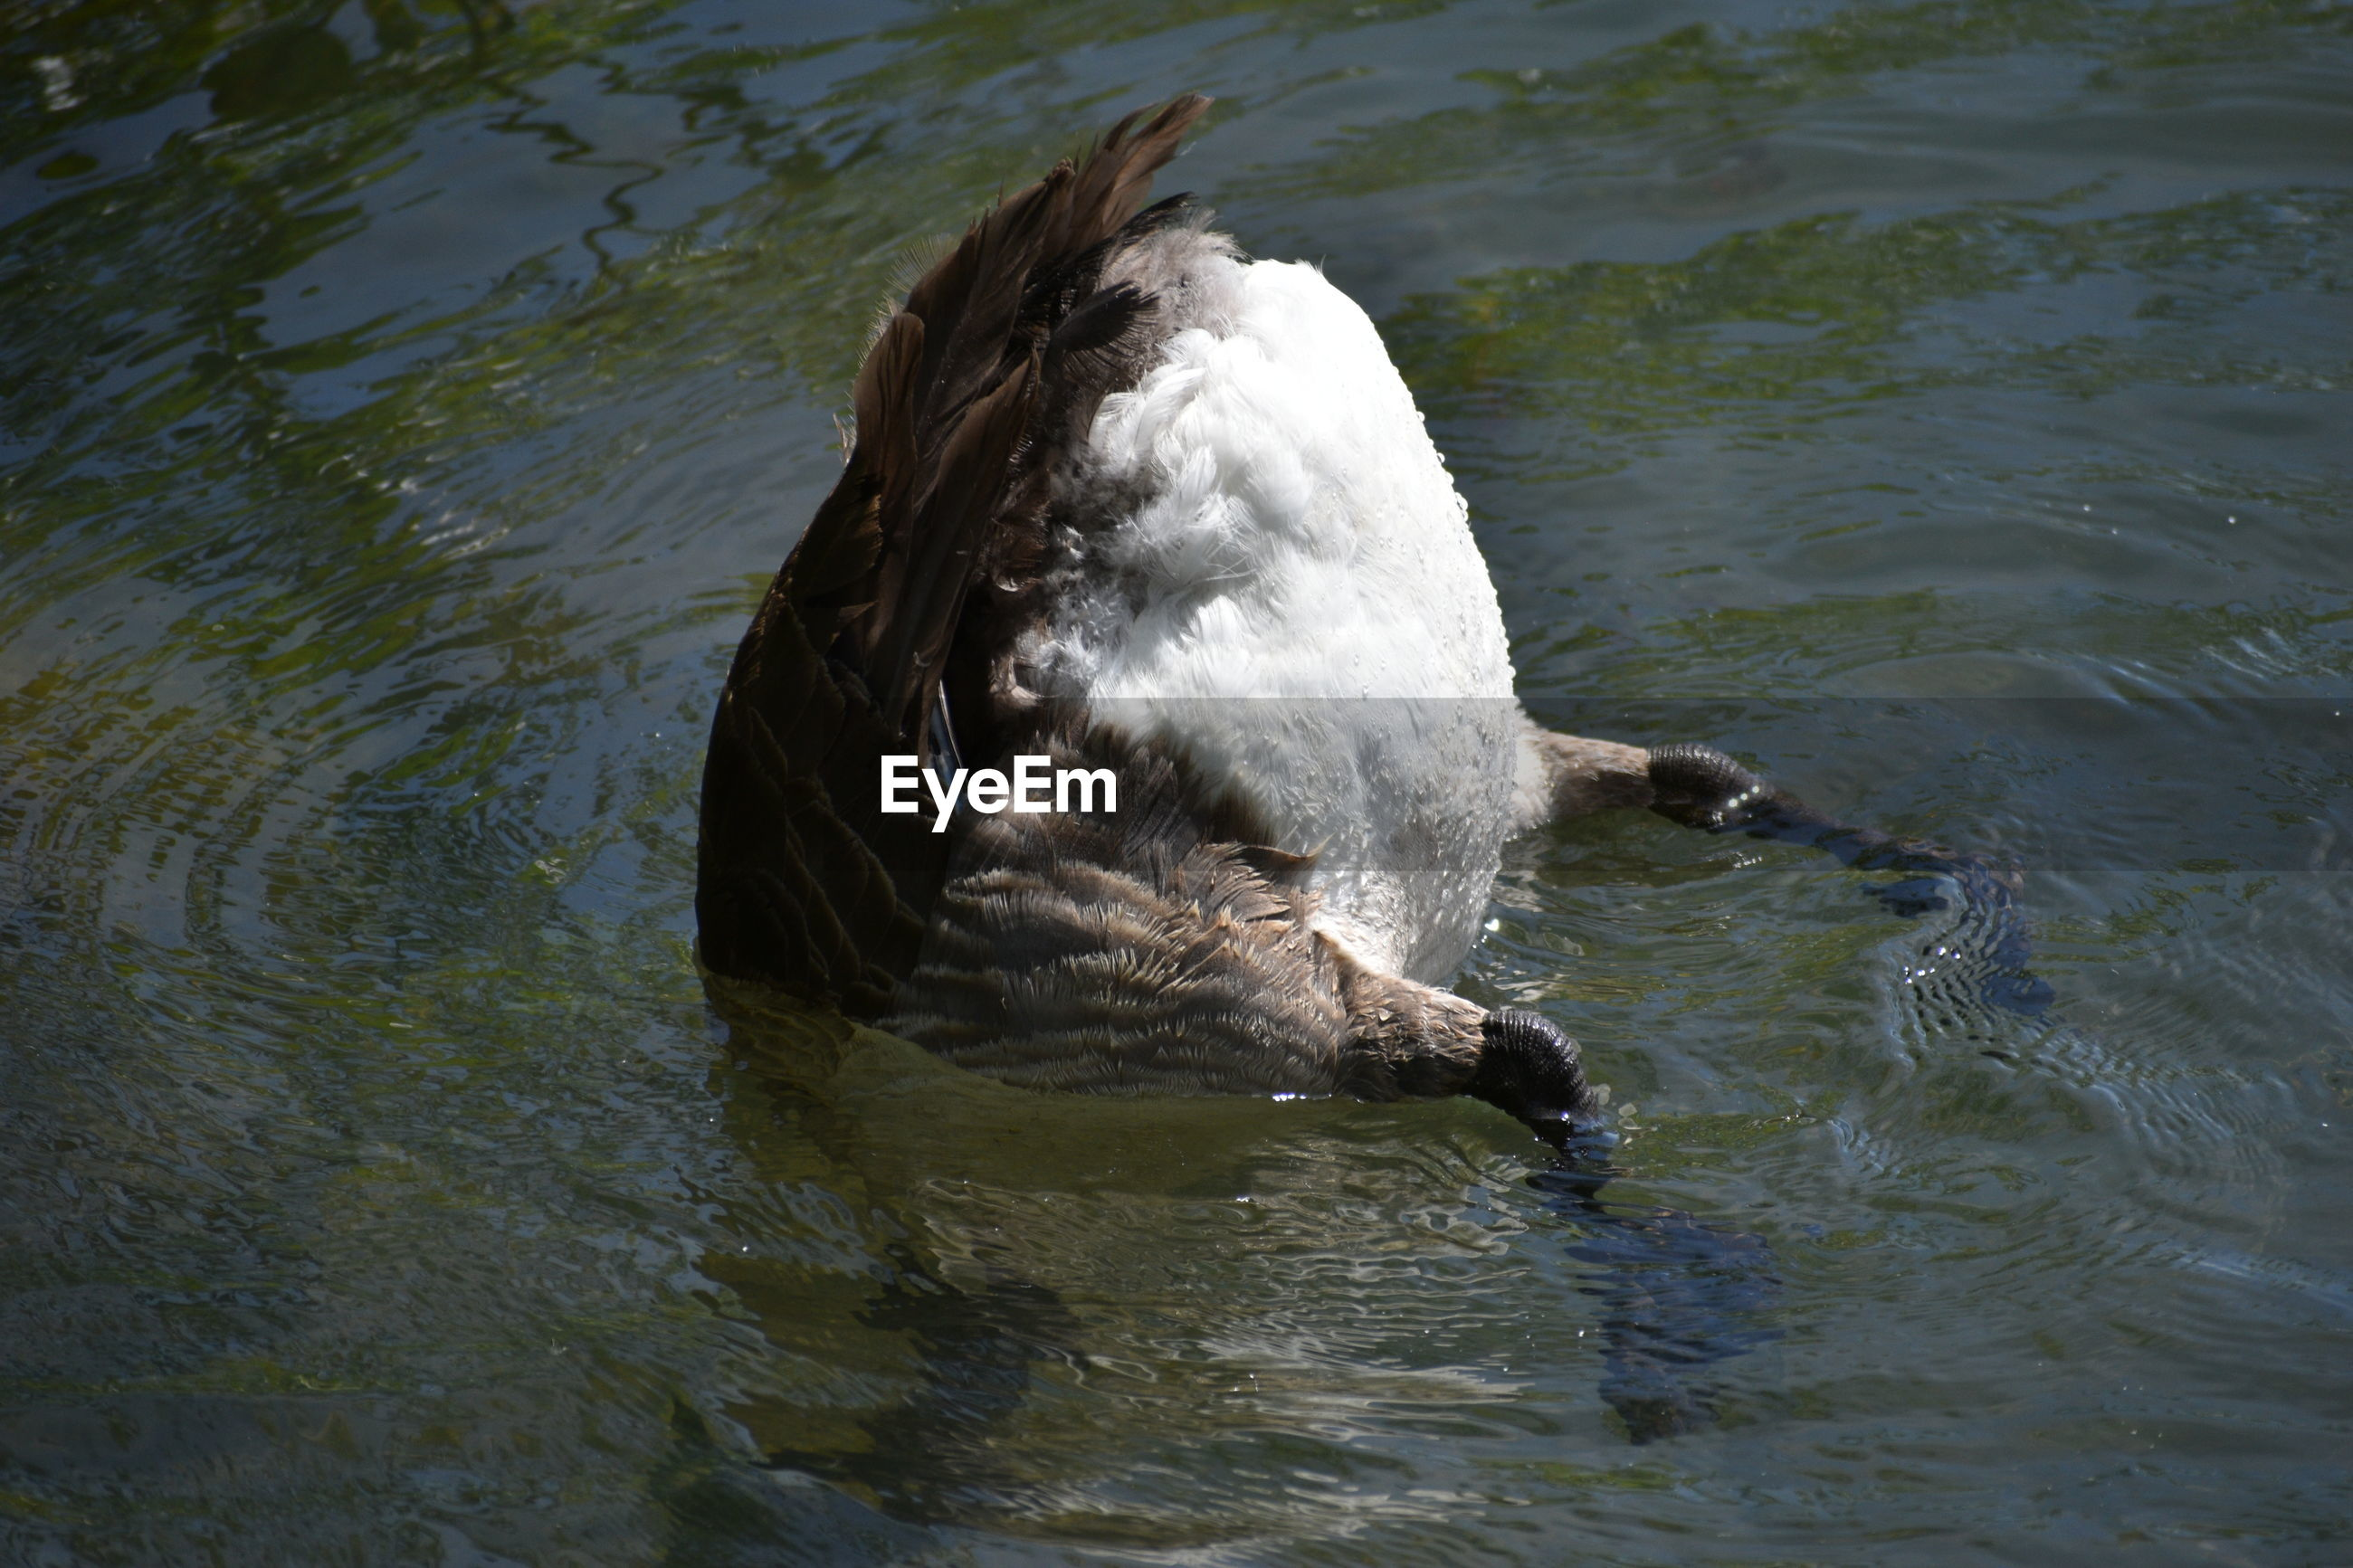 HIGH ANGLE VIEW OF A DUCK SWIMMING IN LAKE